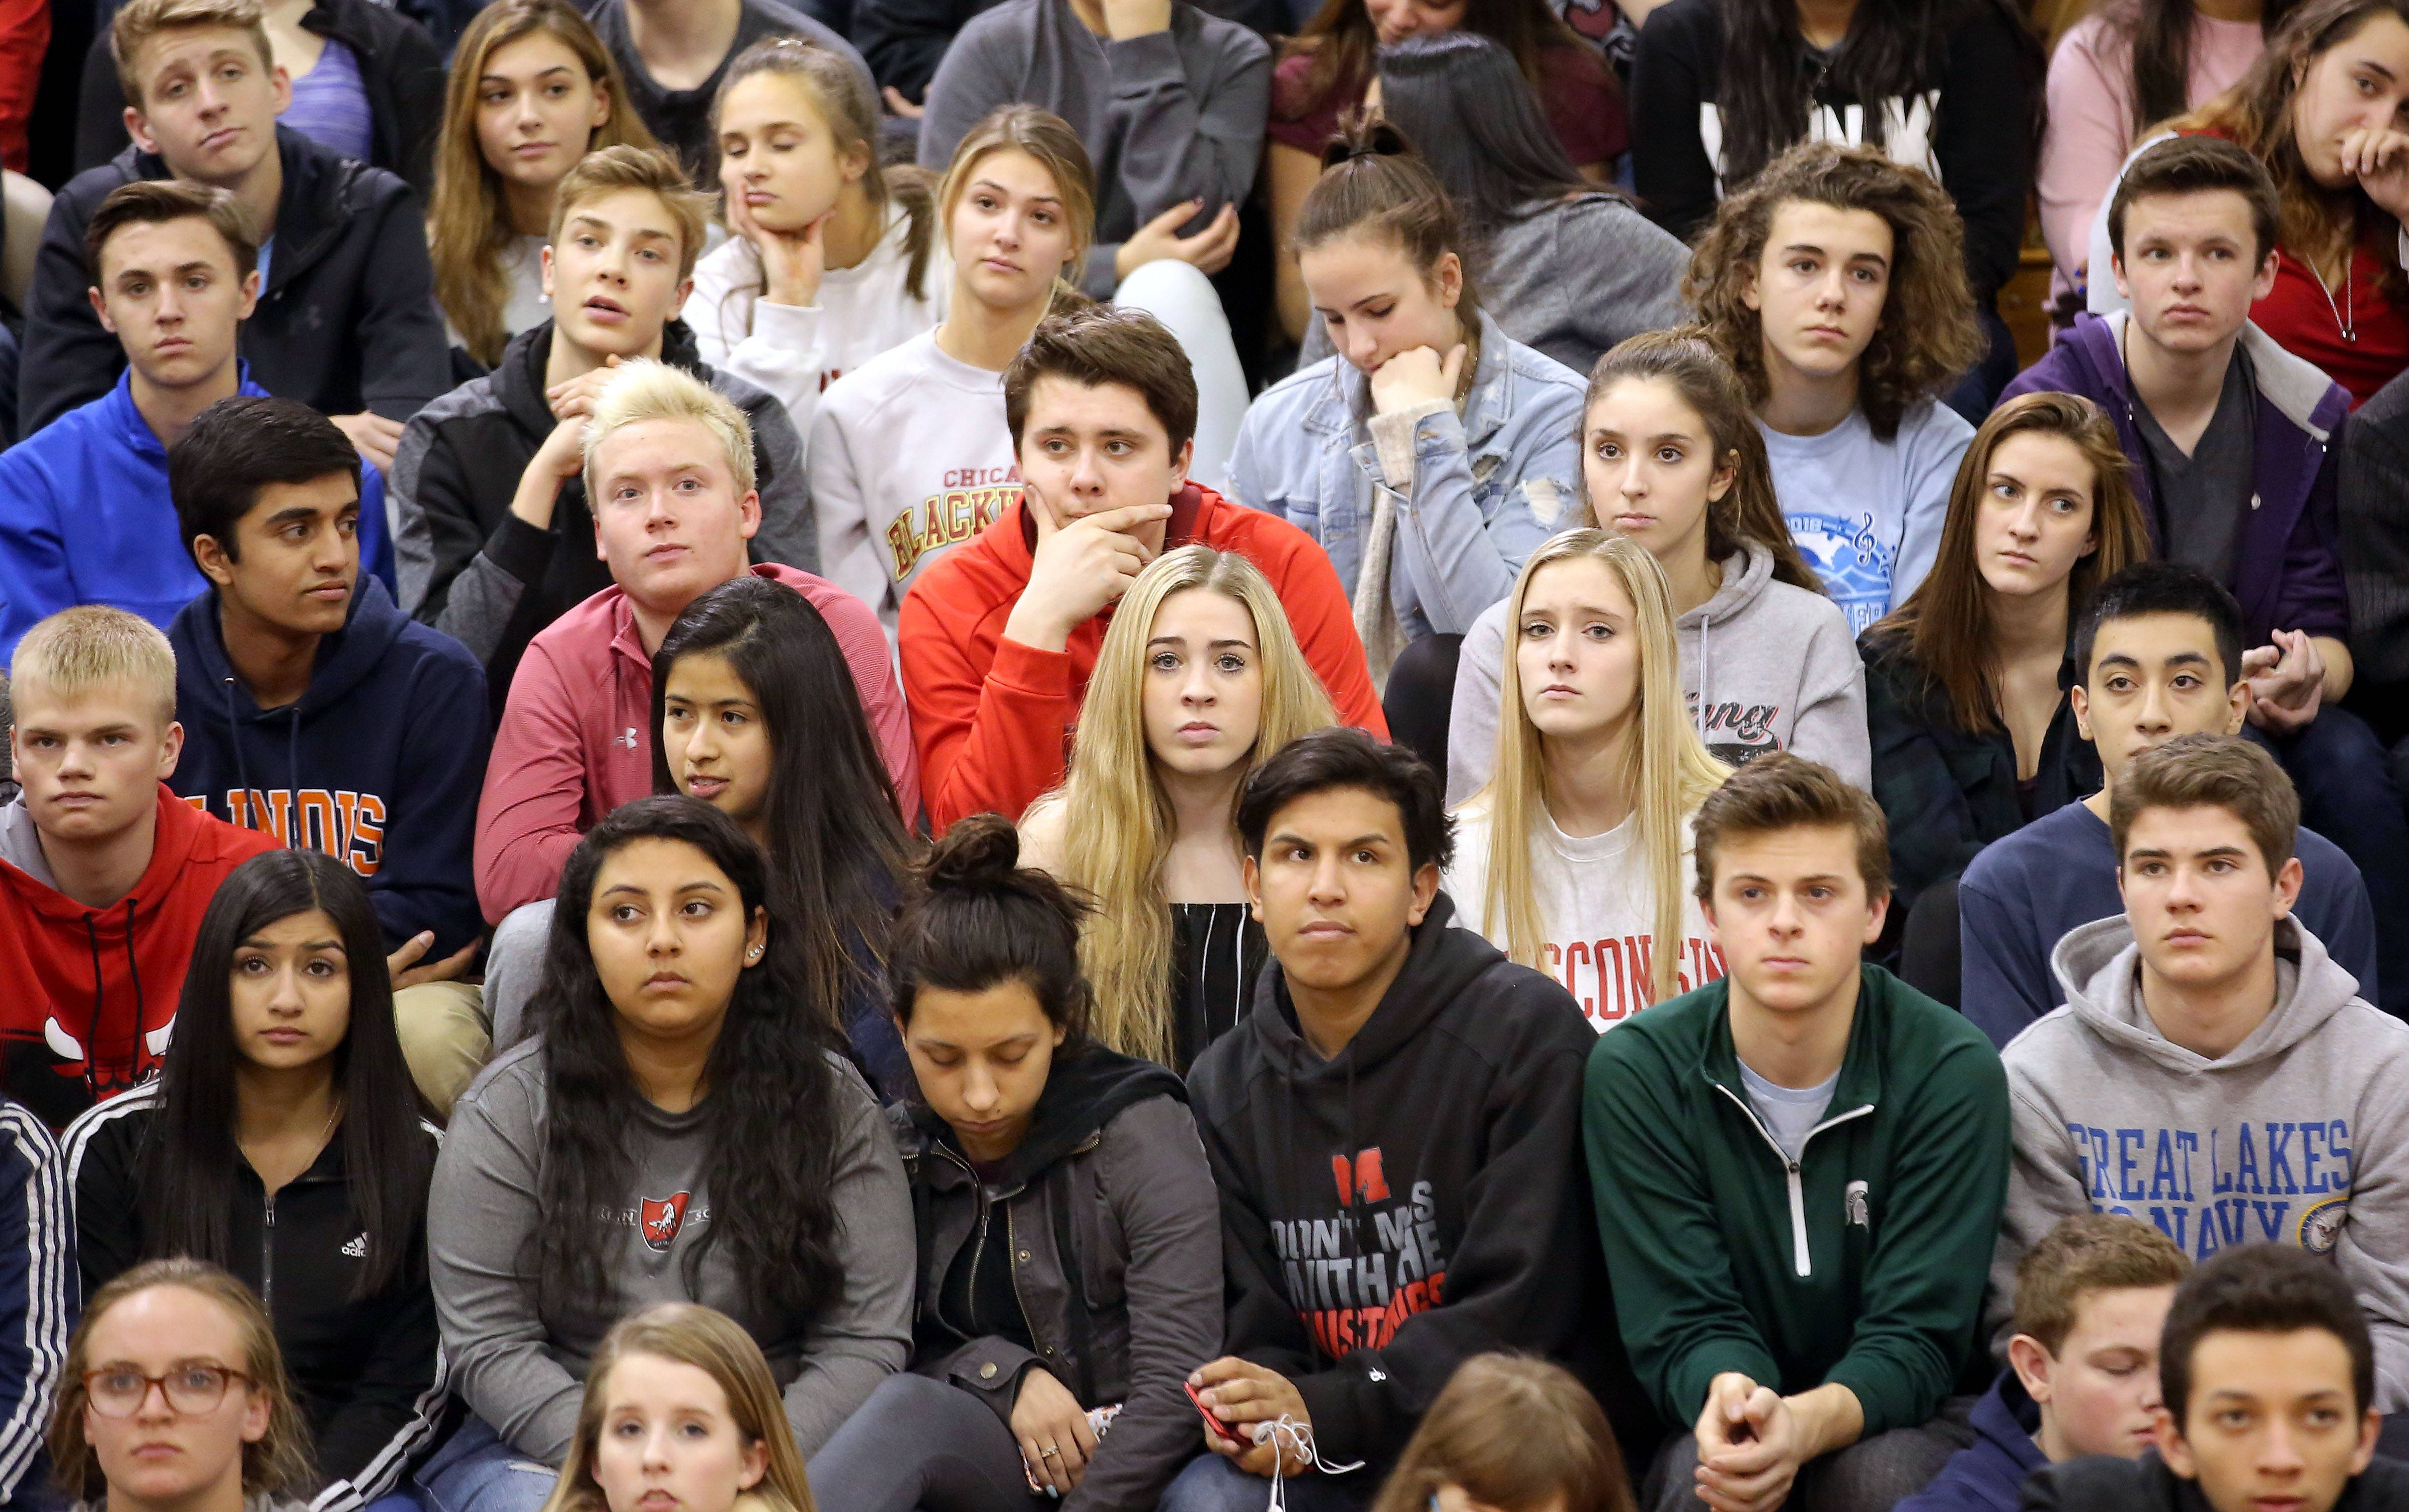 Mundelein High School students listen to Principal Anthony Kroll during an assembly Thursday about dealing with hate speech at the school.